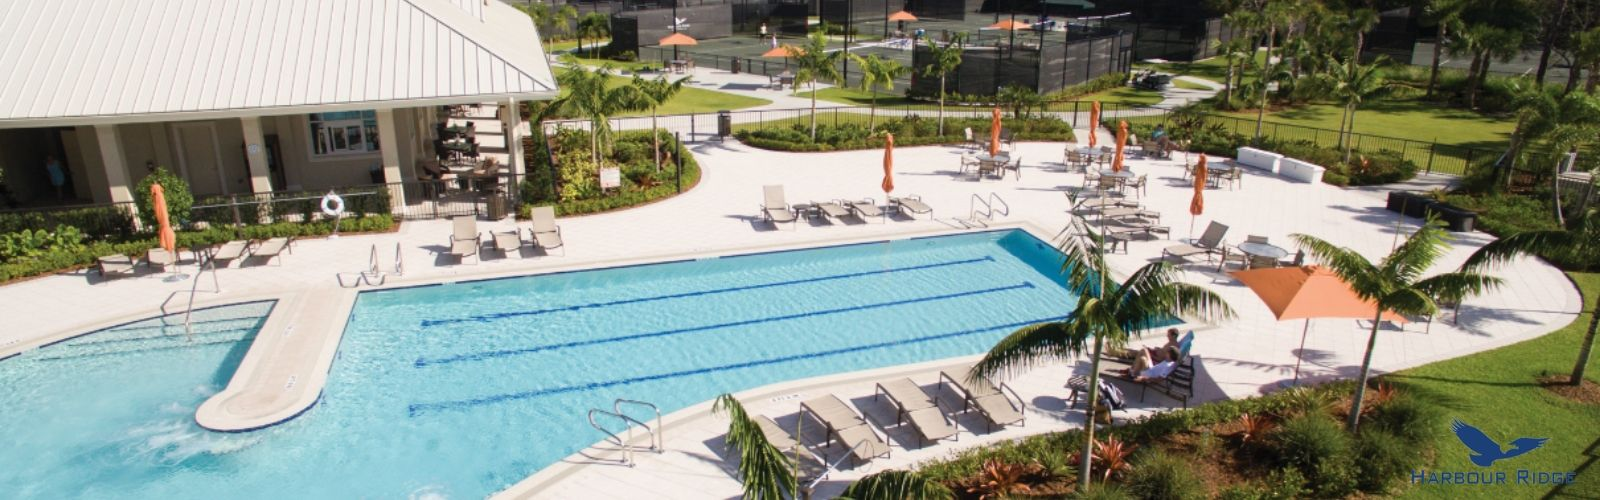 See what FIBO USA magazine had to say about Harbour Ridge's Lakeside Center and Staff